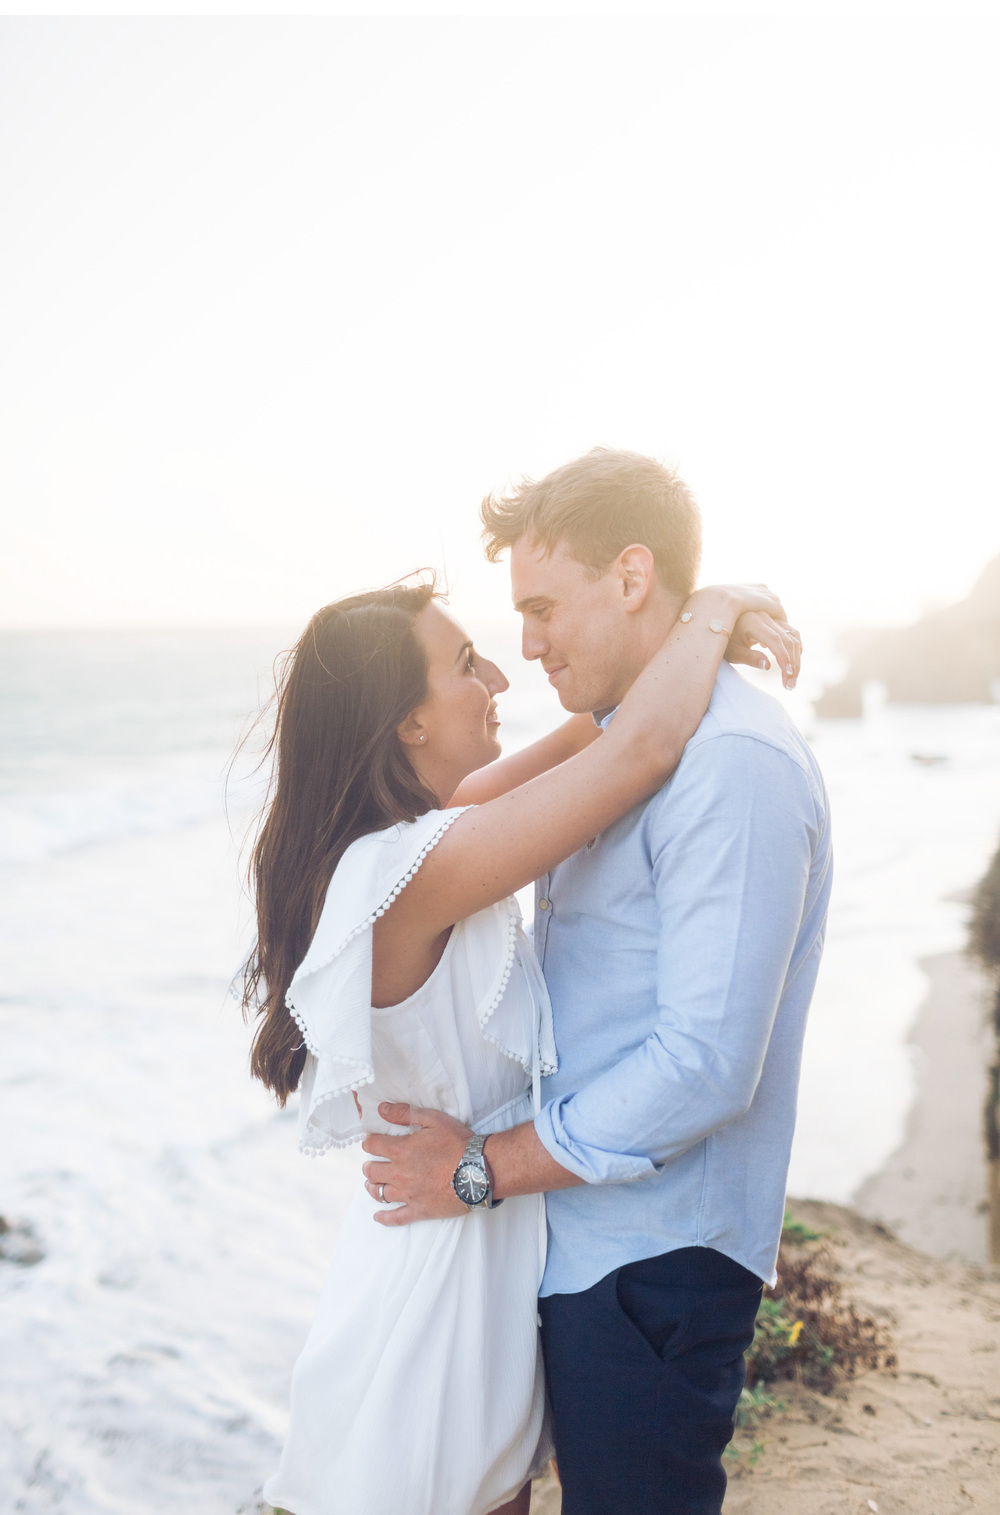 Malibu-California-Wedding-Photographer-Natalie-Schutt-Photography_05.jpg